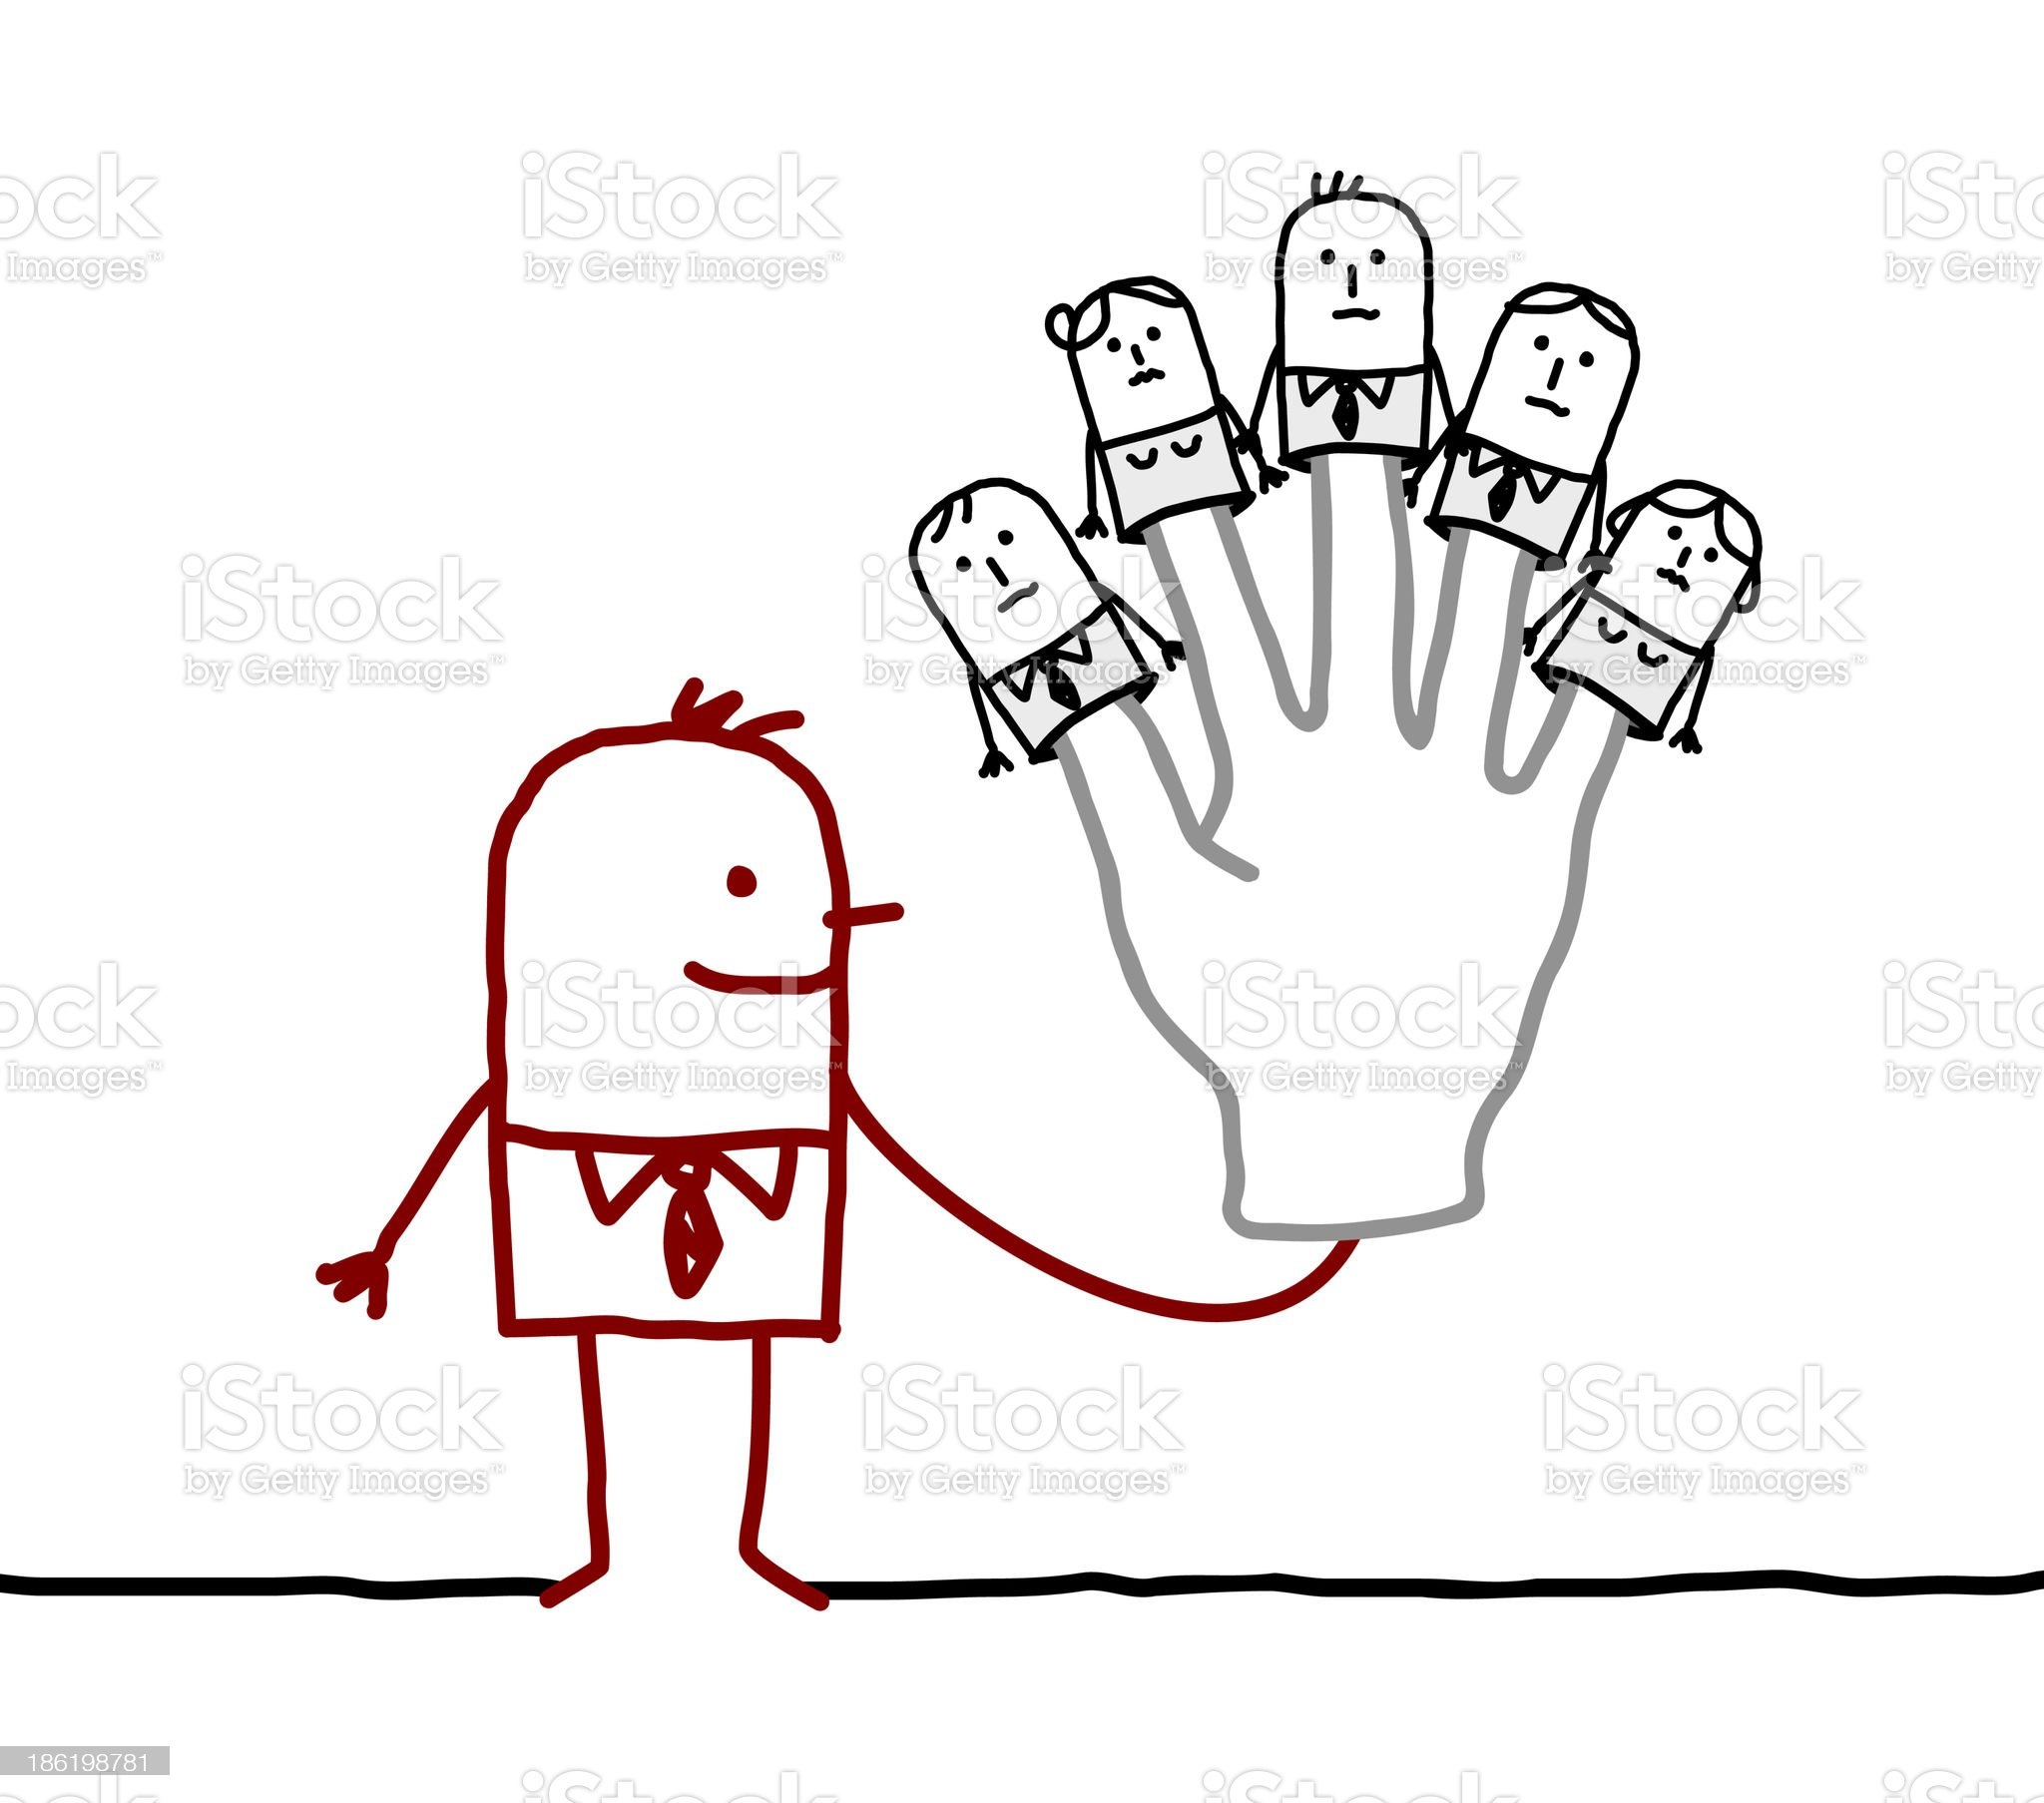 boss with five puppets employees on fingers royalty-free stock vector art